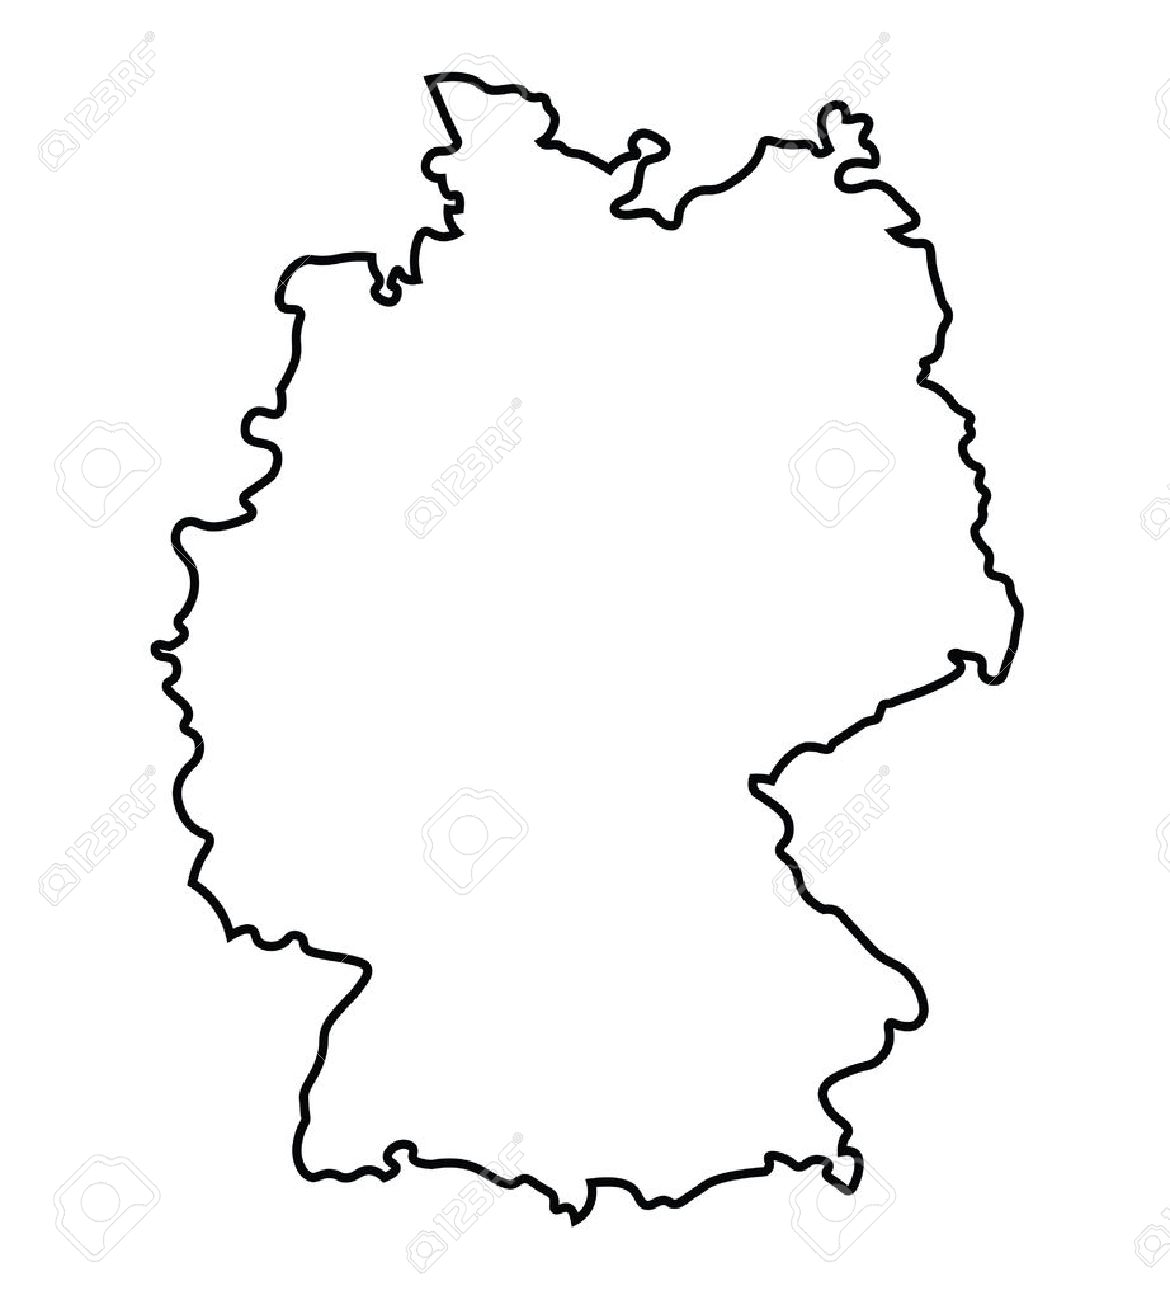 black abstract map of Germany.